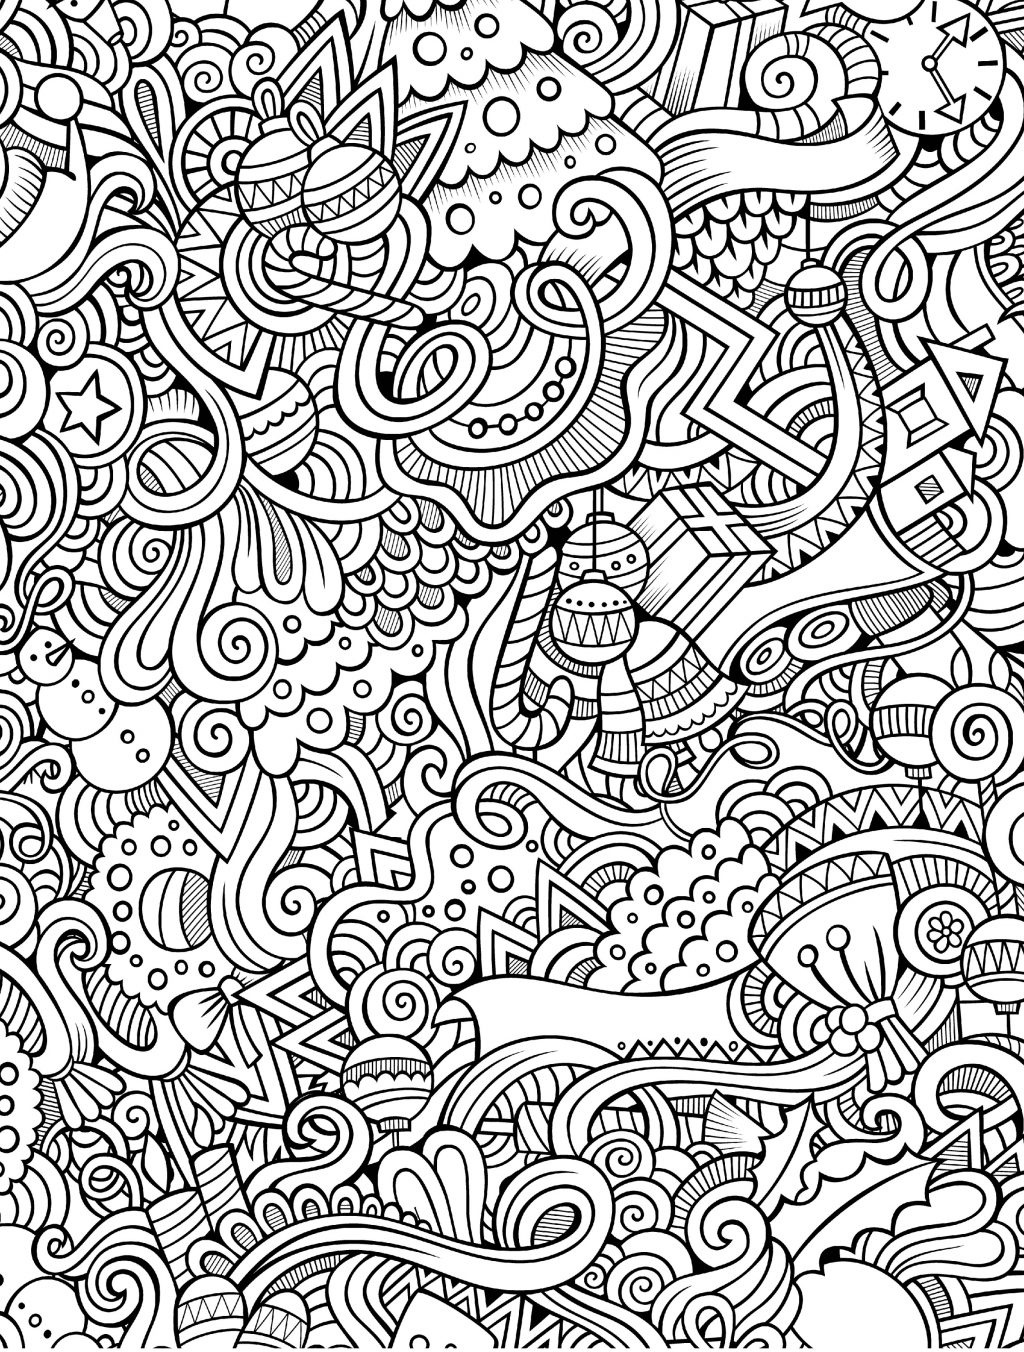 Coloring Ideas : Remarkable Printable Coloring Book Pages Sheets - Free Printable Coloring Book